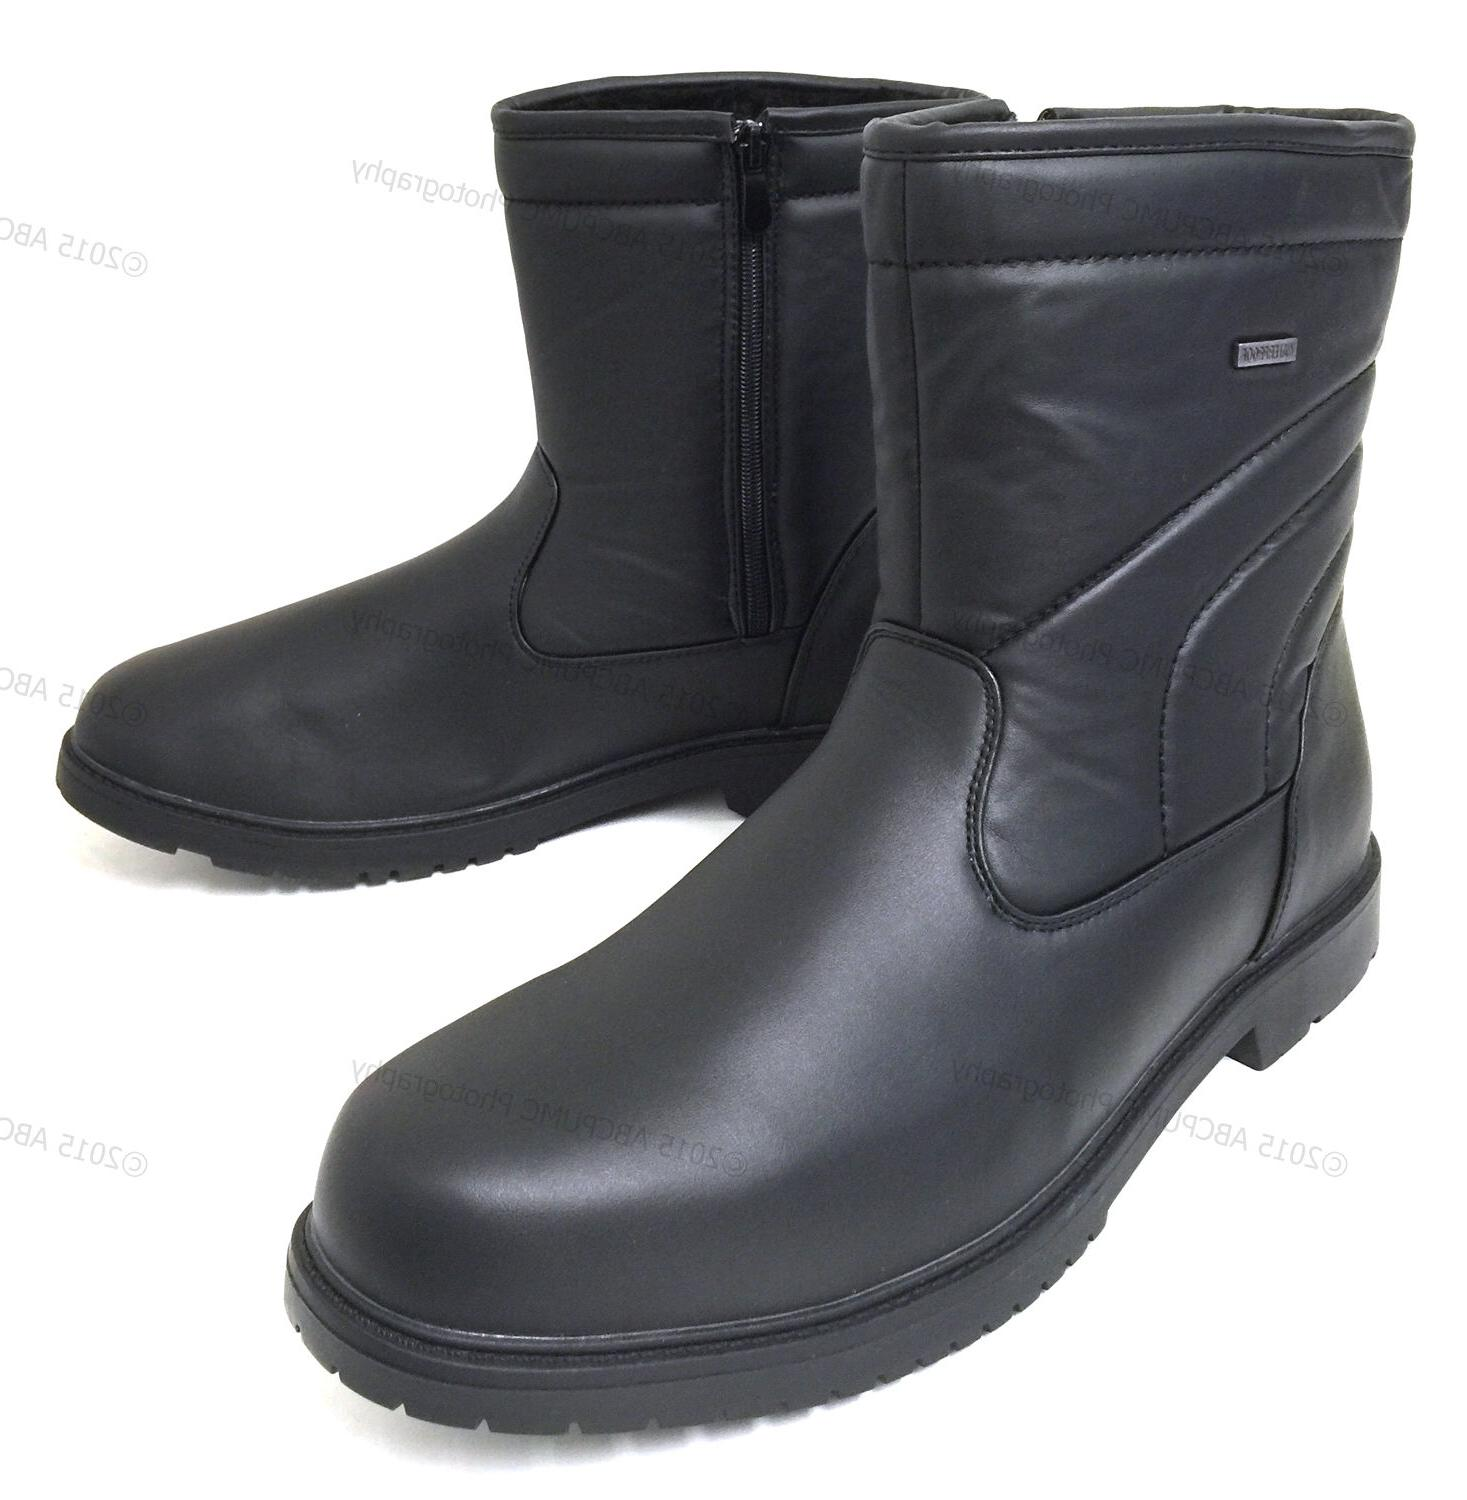 brand new men s winter boots leather